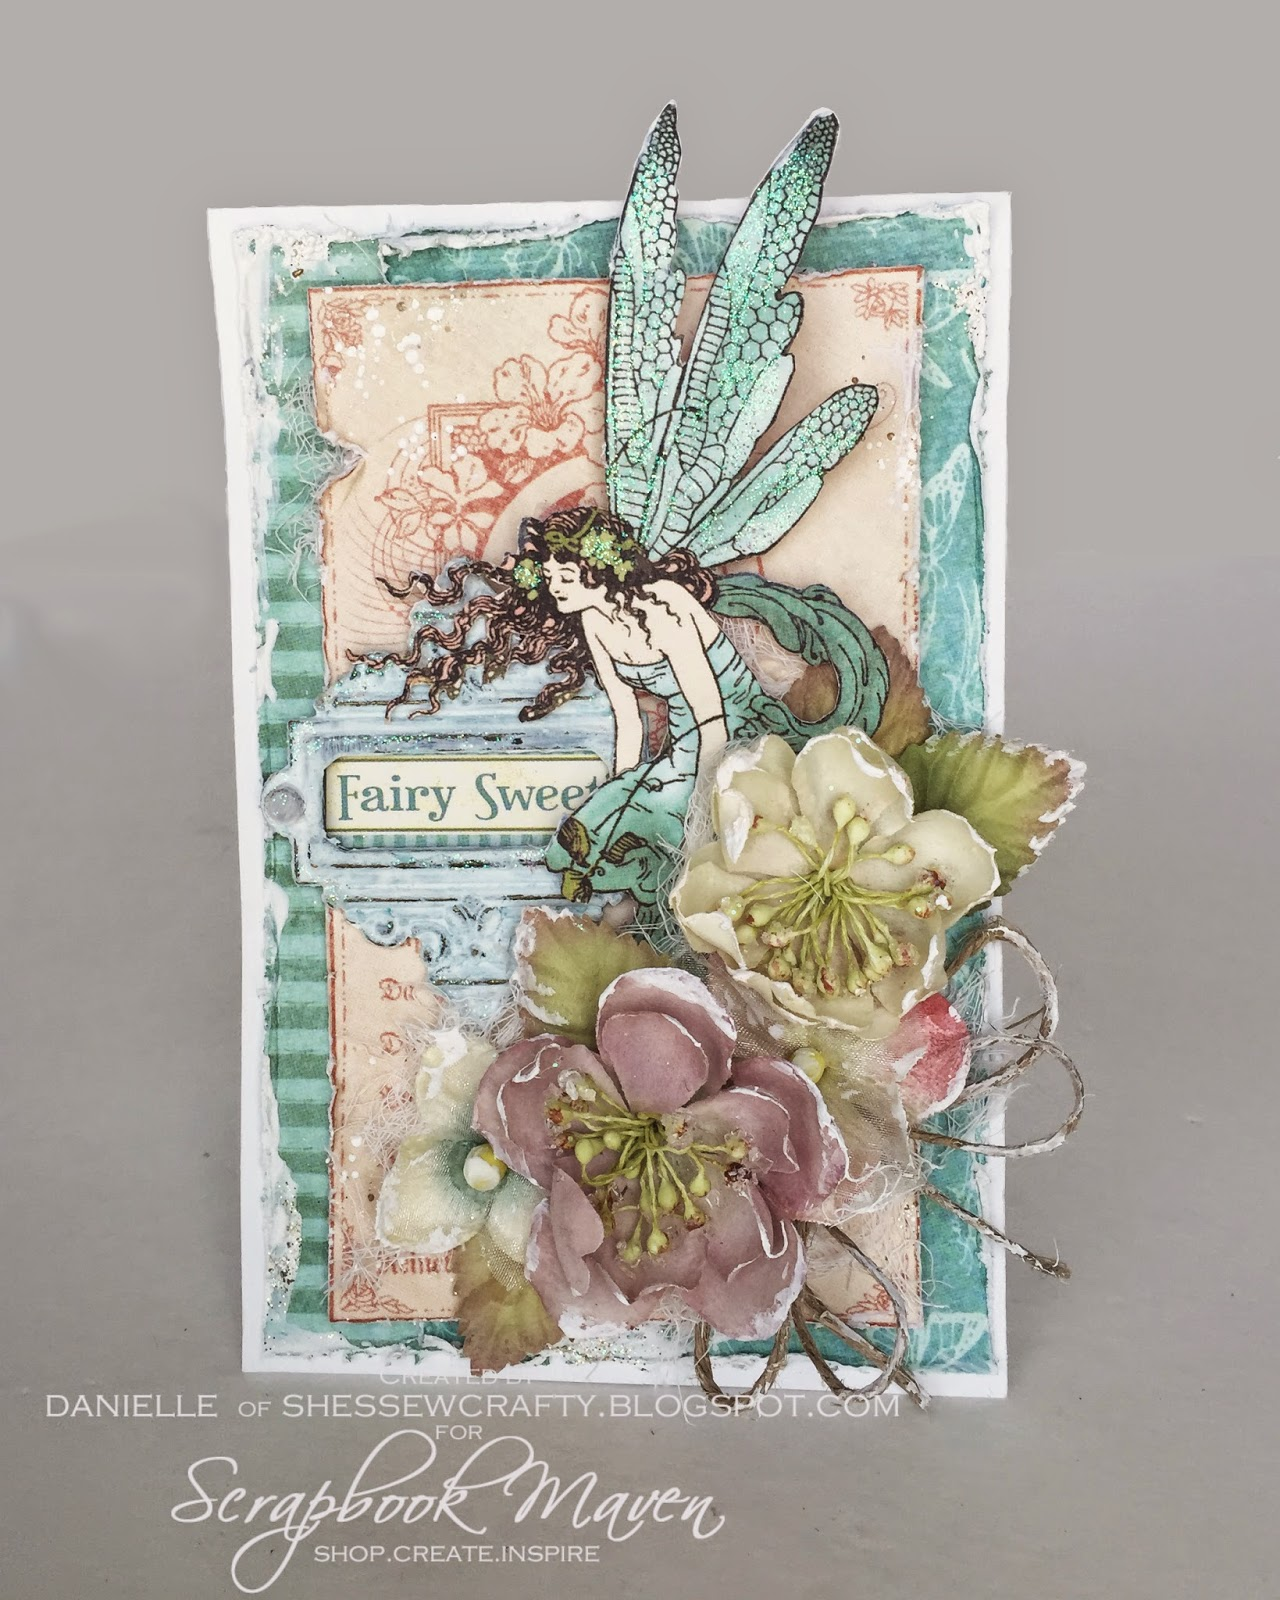 shabby chic fairy card for ScrapbookMaven.com using Graphic 45 Once Upon a Springtime